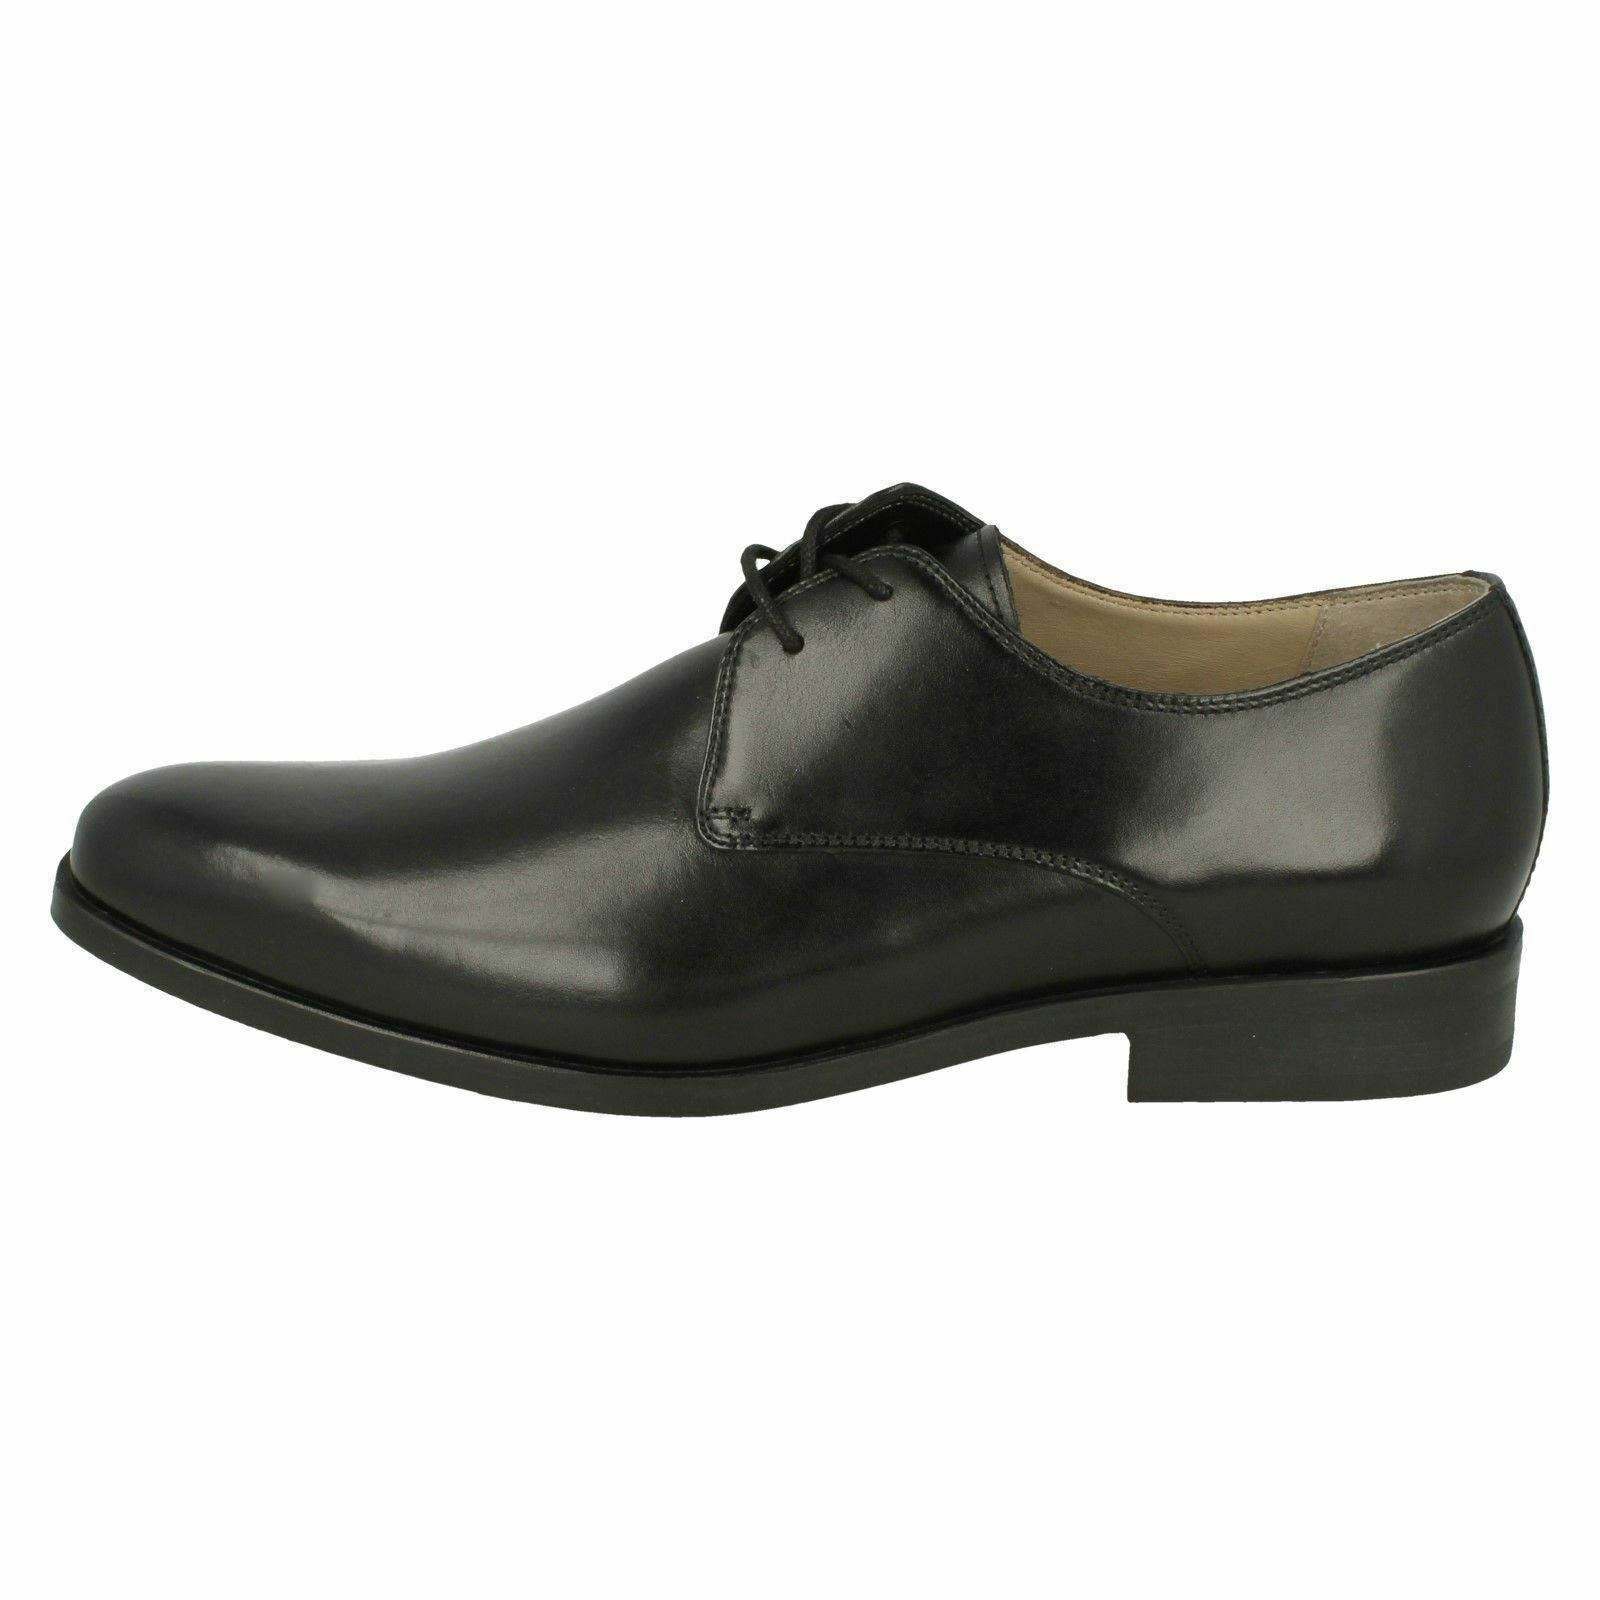 Ladies Clarks Leather Casual Shoes Style Tri - Tri Style Caitlin bd8c6d